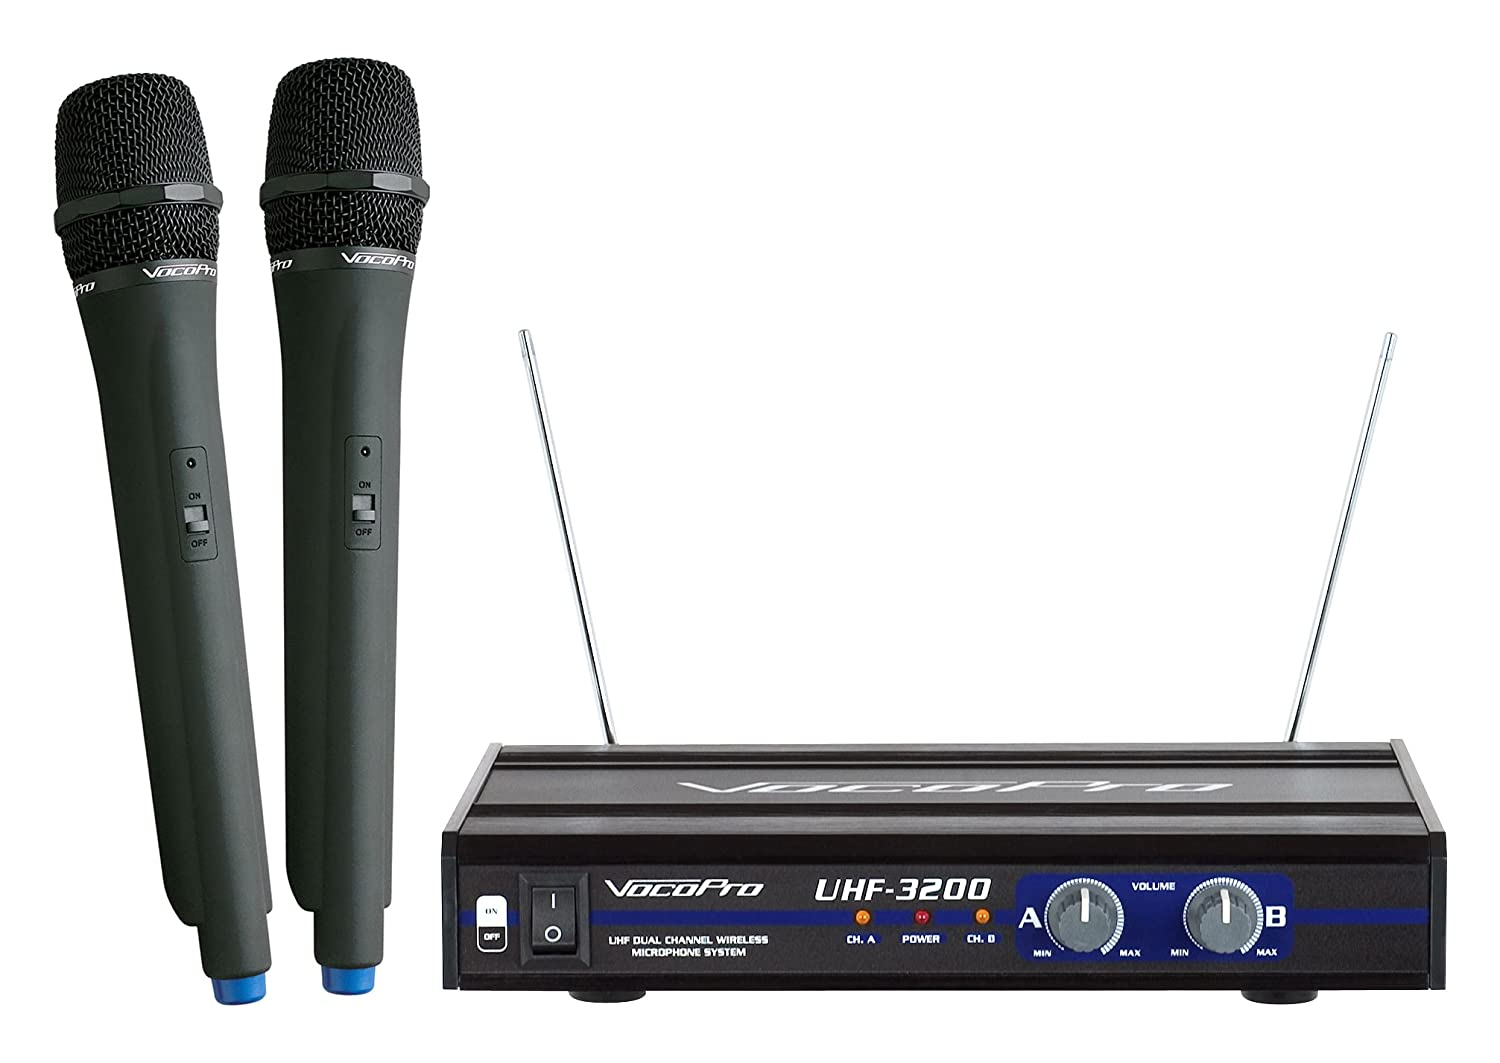 Amazon.com: VocoPro UHF-3200 UHF-Dual Channel Wireless Microphone System:  Musical Instruments